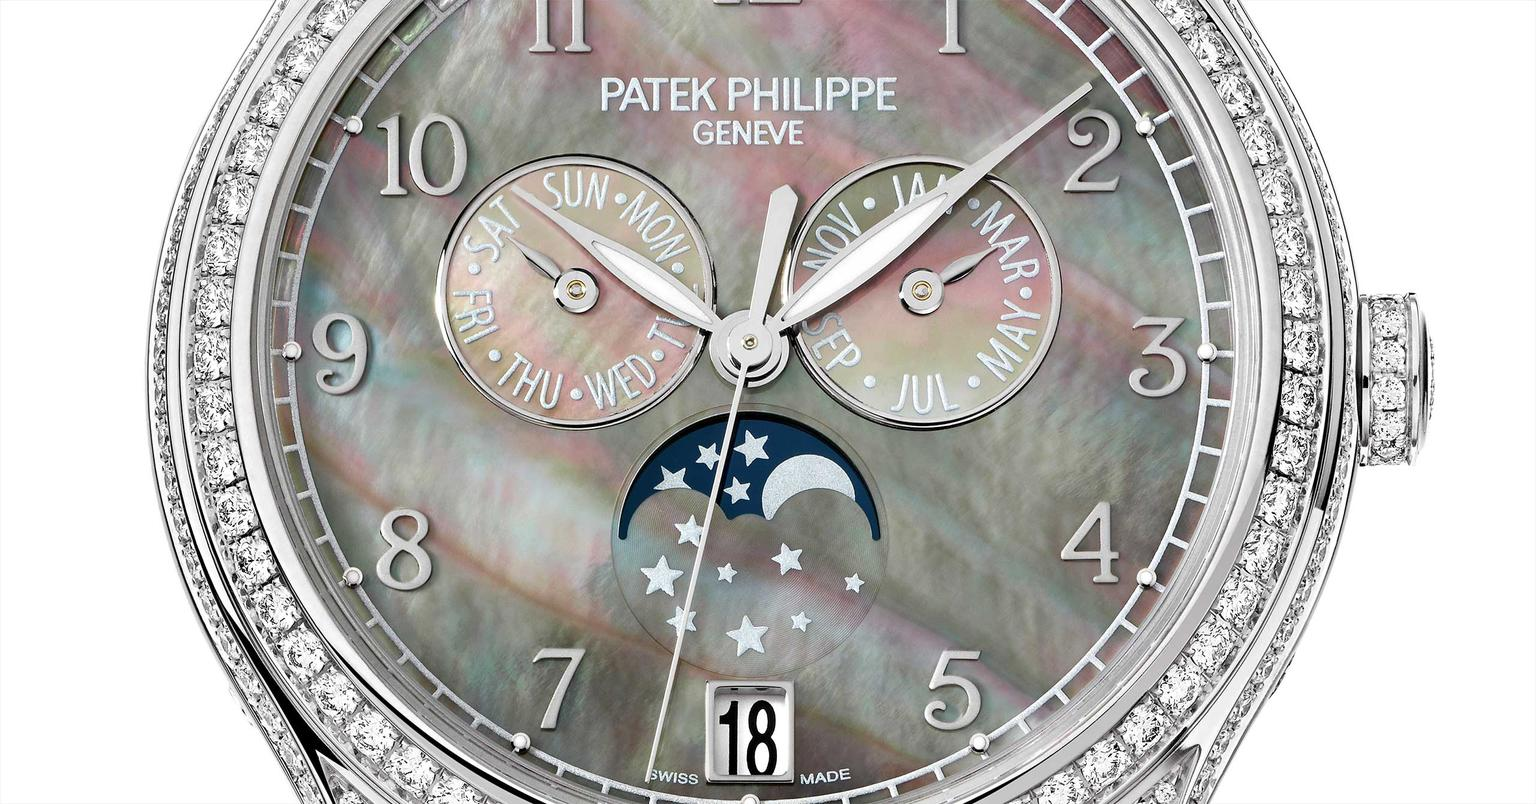 Patek Philippe ladies' moonphase watch new for 2015